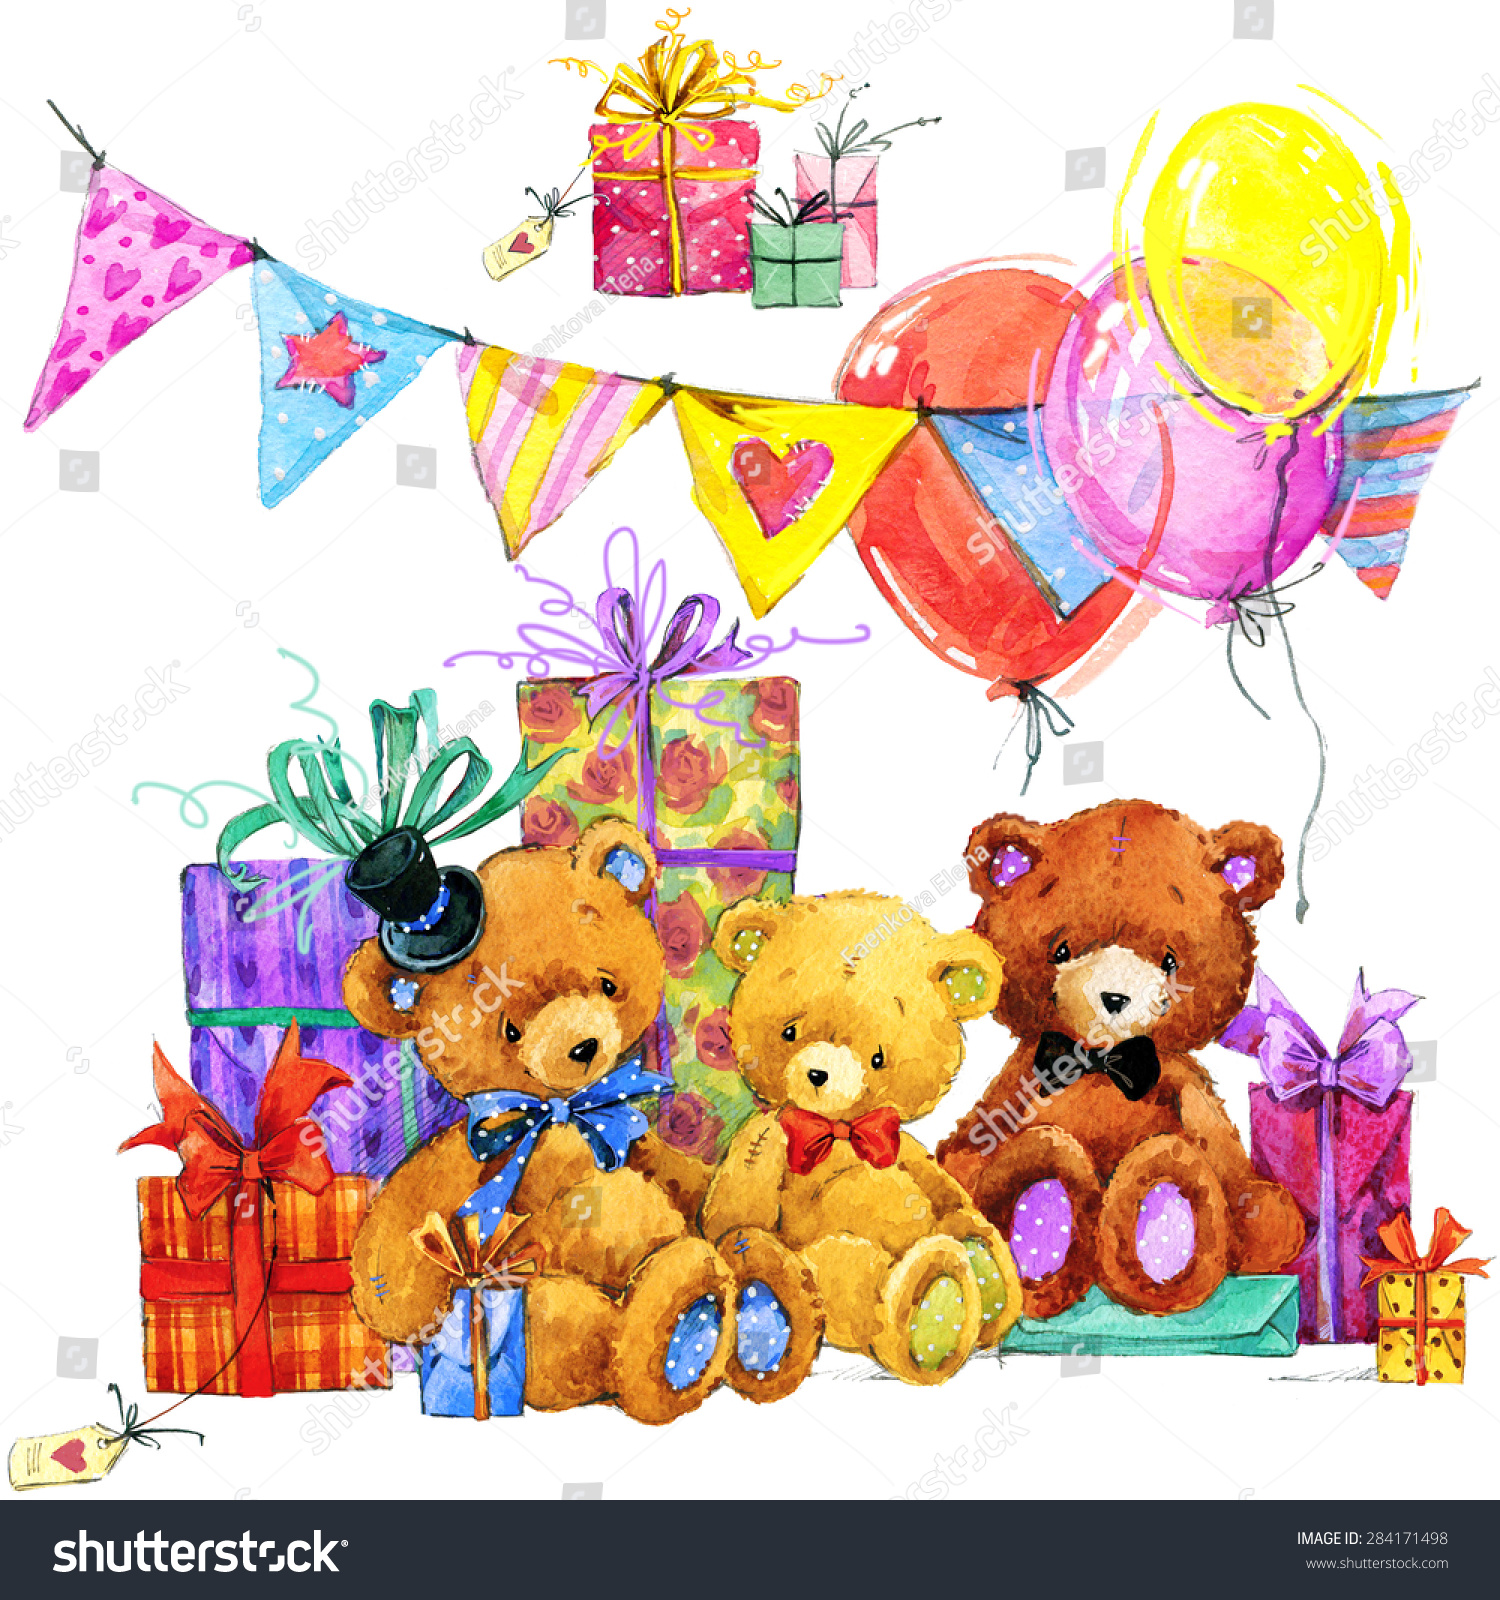 Teddy bear.Toy background for celebration kids Birthday festival watercolor illustration